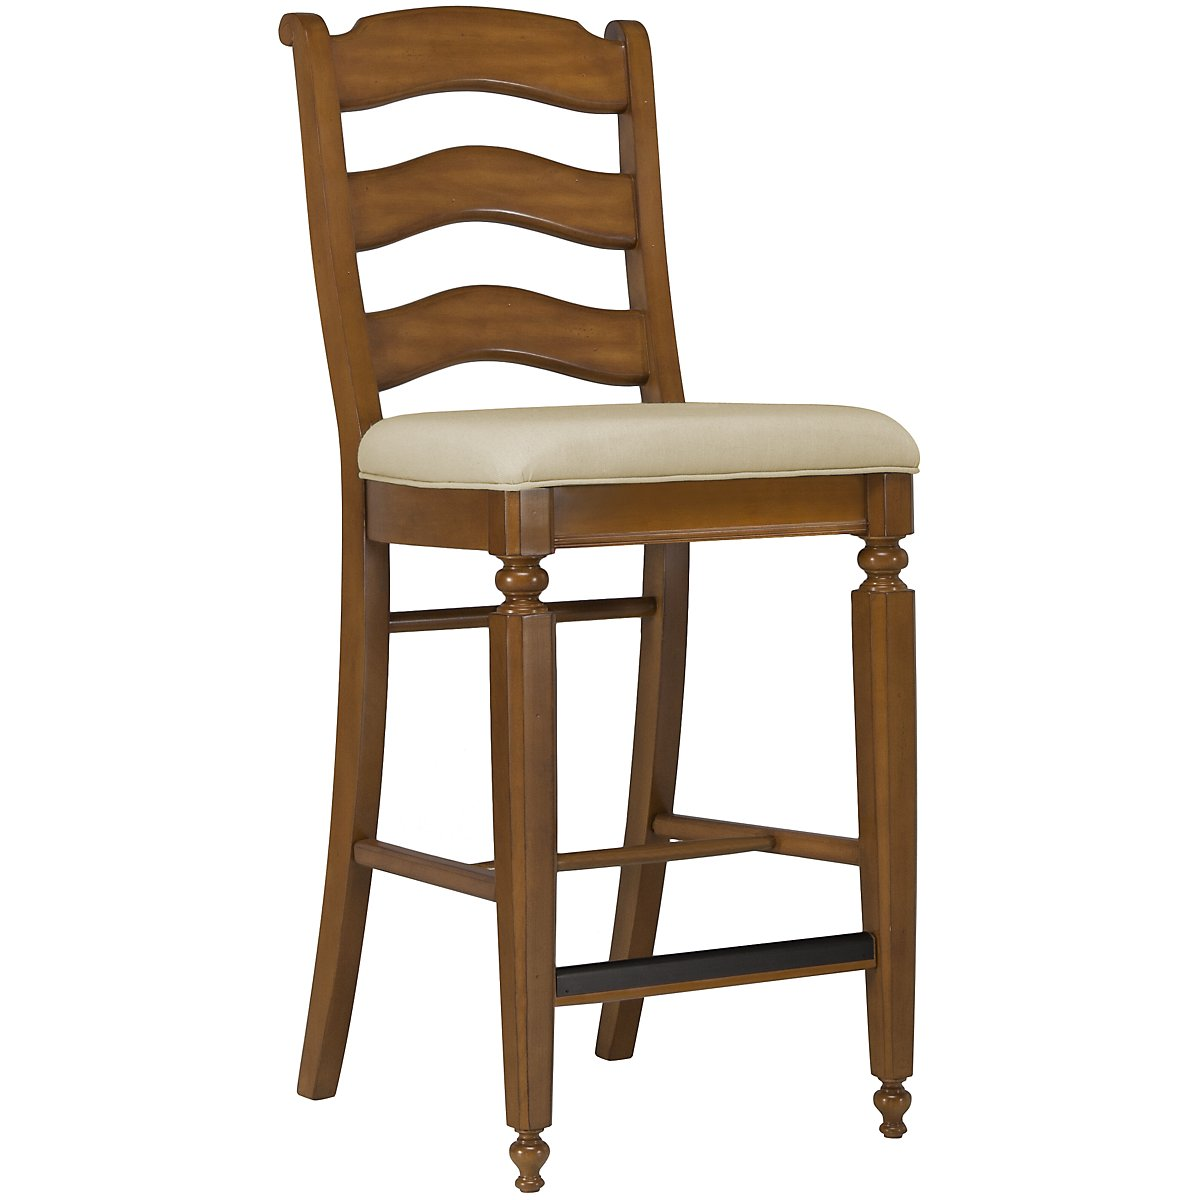 "Claire Mid Tone 30"" Wood Barstool"